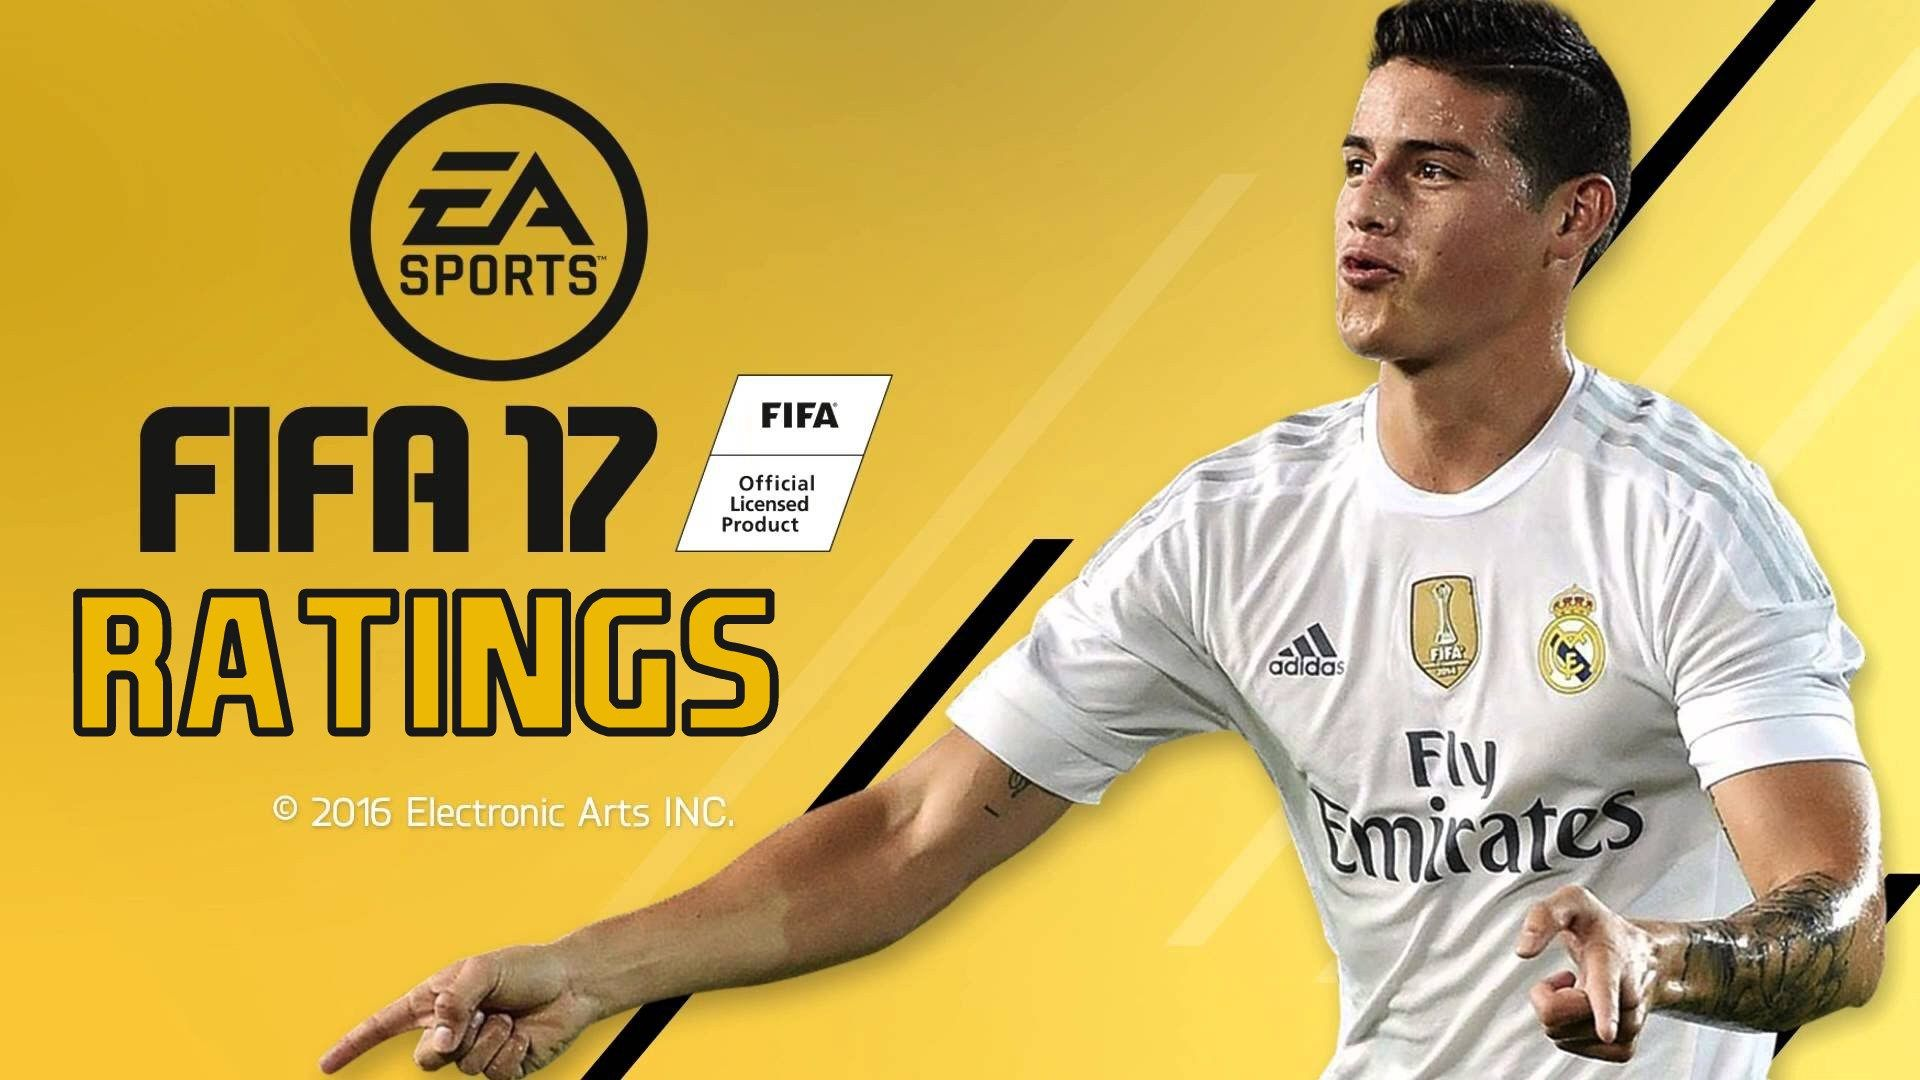 The new FIFA 17 releasing this September